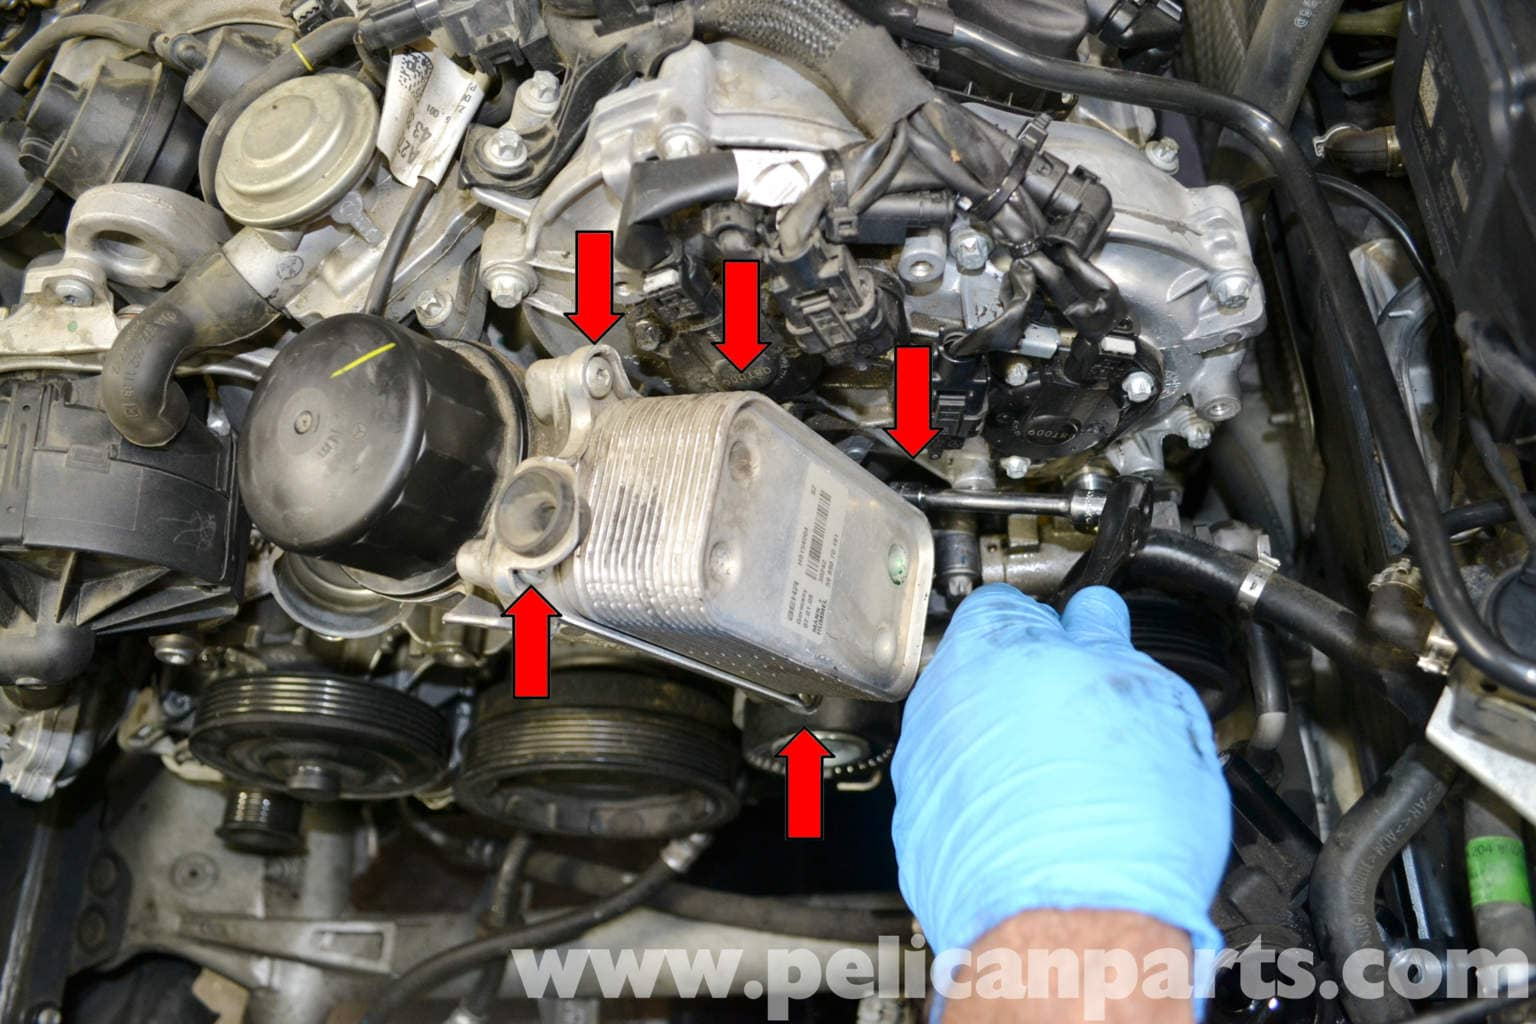 Mercedes-Benz W204 Oil Cooler and Seal Replacement - (2008